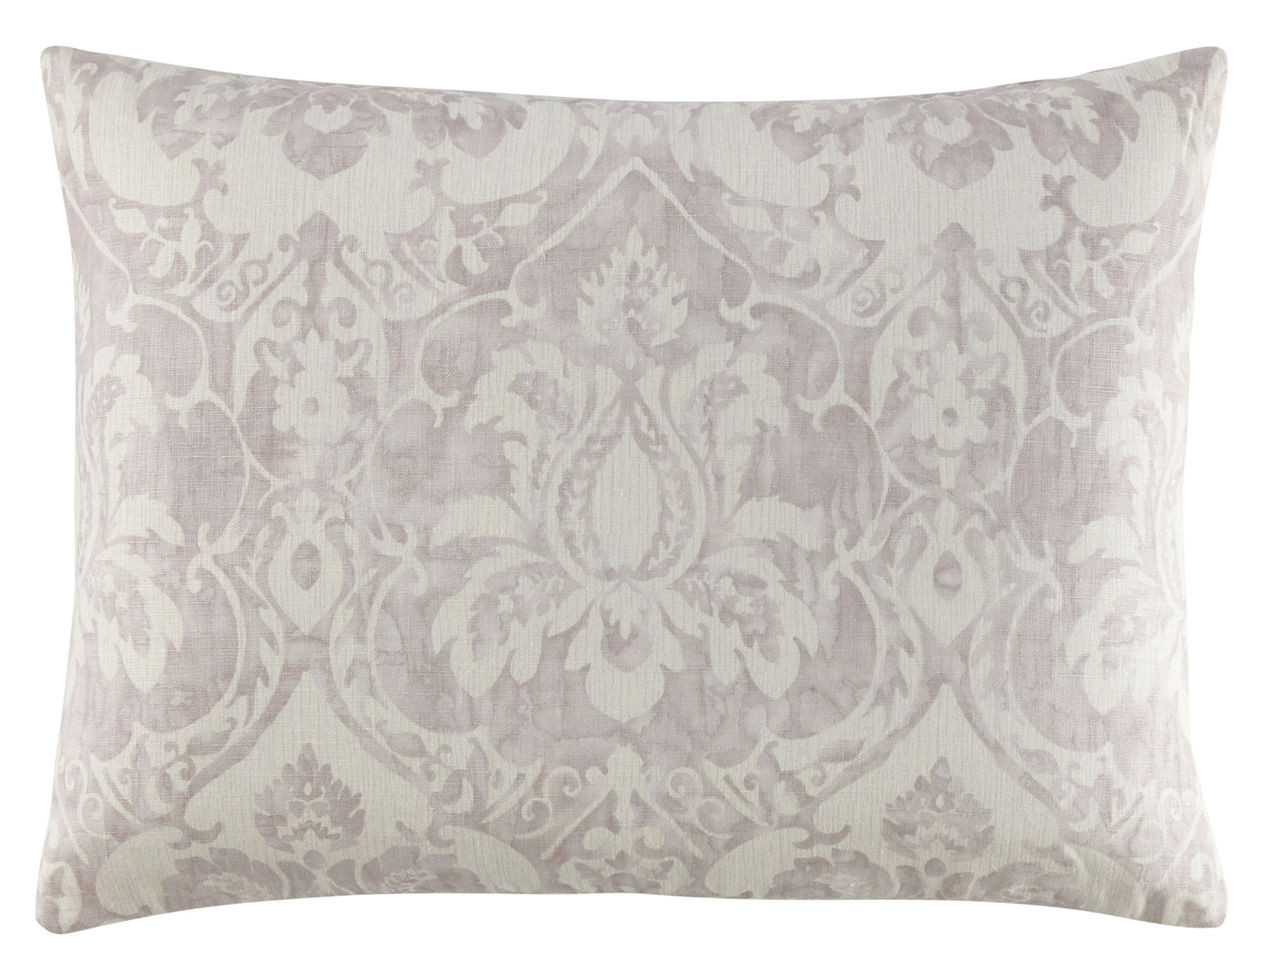 Luxury Throw Pillows, mauve and pink high end decorative pillows